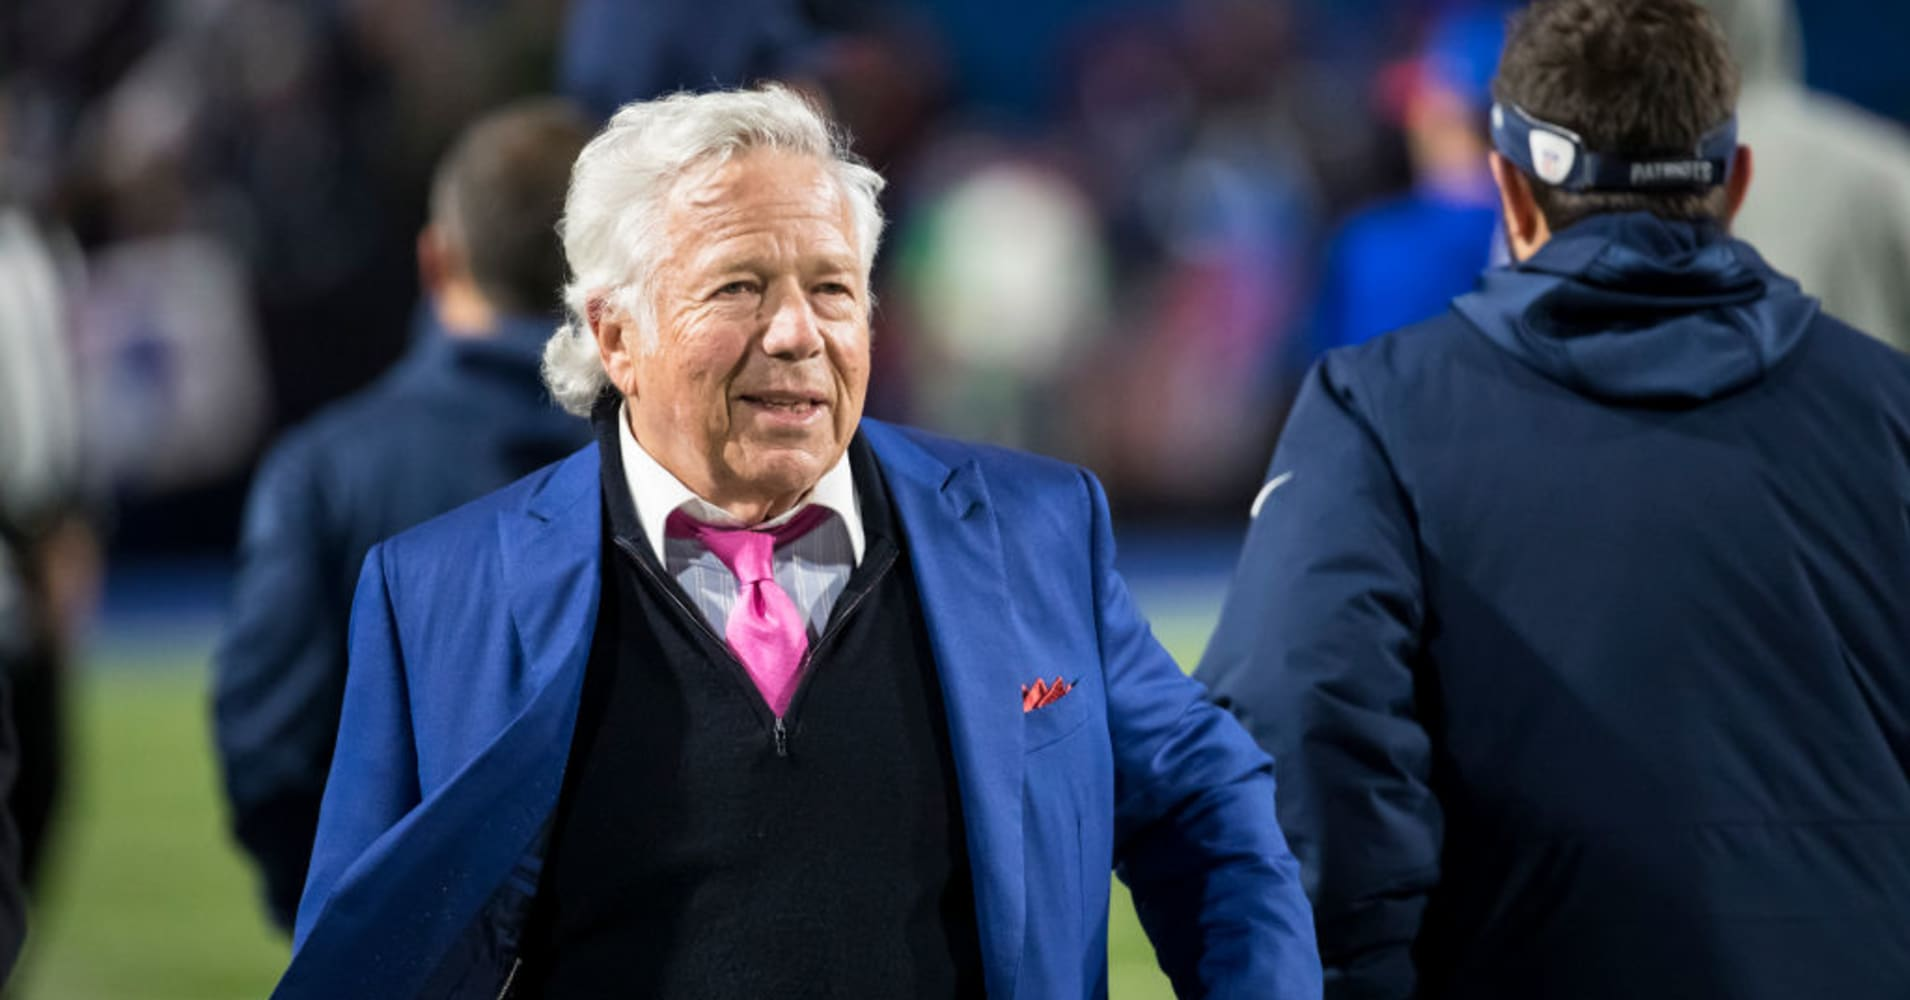 New England Patriots owner Robert Kraft charged with soliciting prostitution in human trafficking probe